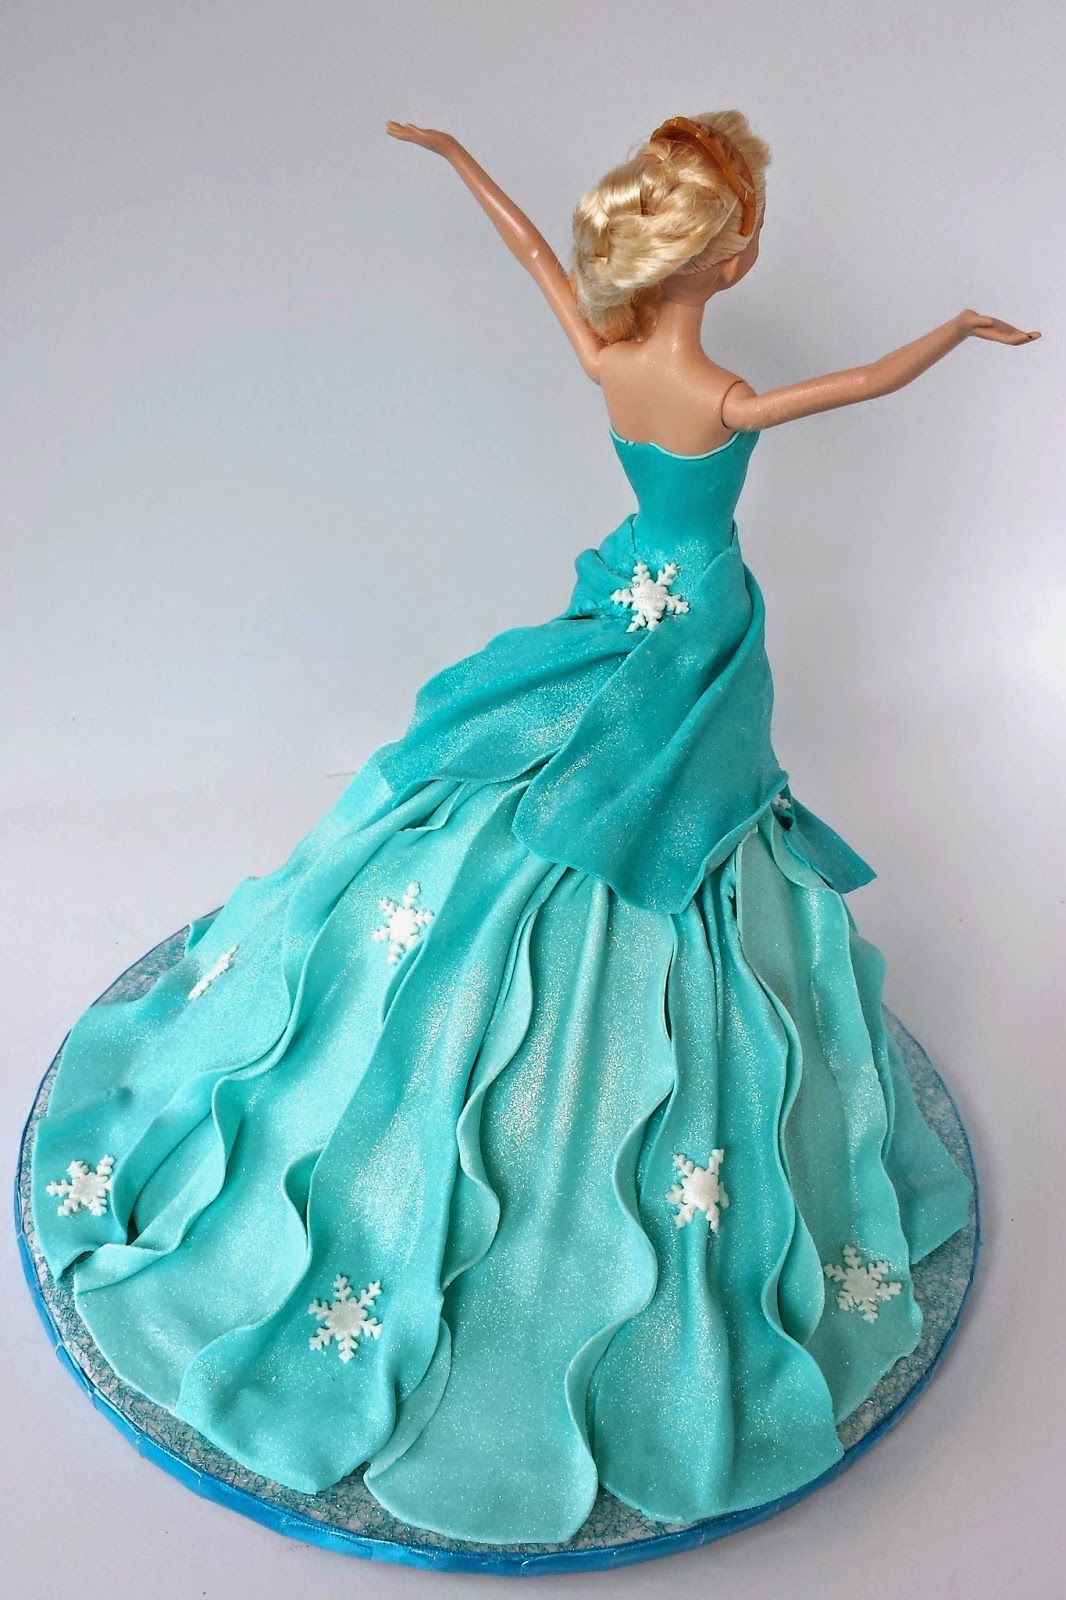 Cake Blog Elsa Doll Cake Tutorial I like the use of fondant for